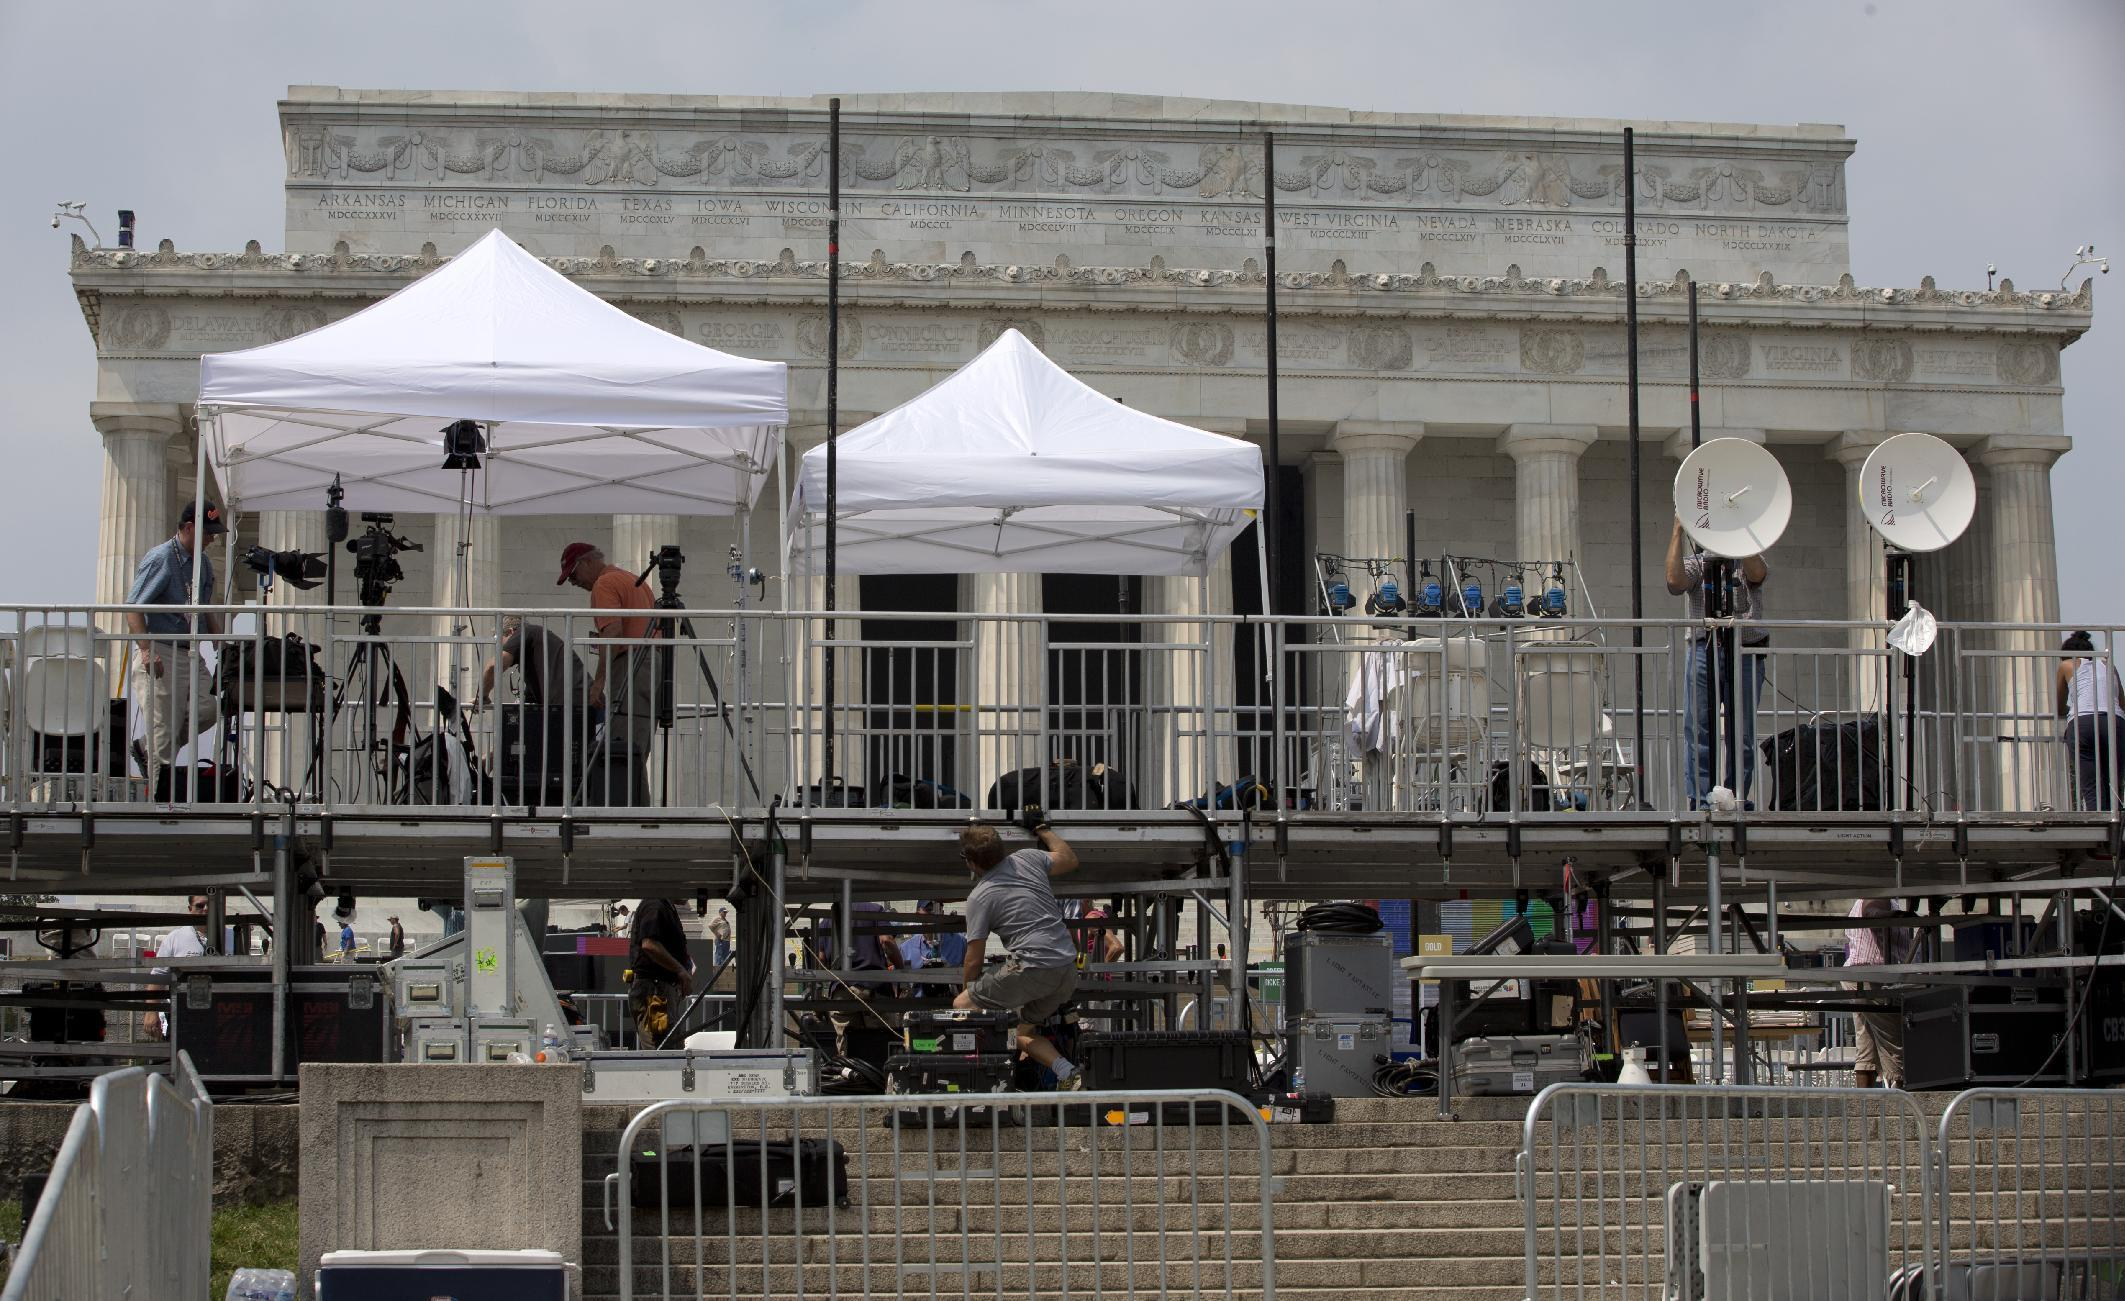 """Members of the media set up equipment in front of the Lincoln Memorial in Washington, Tuesday, Aug. 27, 2013, for the 50th anniversary of the March On Washington celebrations that will be held Wednesday, Aug, 28, 2013. Barack Obama, who will speak, was 2 years old and growing up in Hawaii when Martin Luther King Jr. delivered his """"I Have a Dream"""" speech from the steps of the Lincoln Memorial. Fifty years later, the nation's first black president will stand as the most high-profile example of the racial progress King espoused, delivering remarks at a nationwide commemoration of the 1963 demonstration for jobs, economic justice and racial equality. (AP Photo/Carolyn Kaster)"""